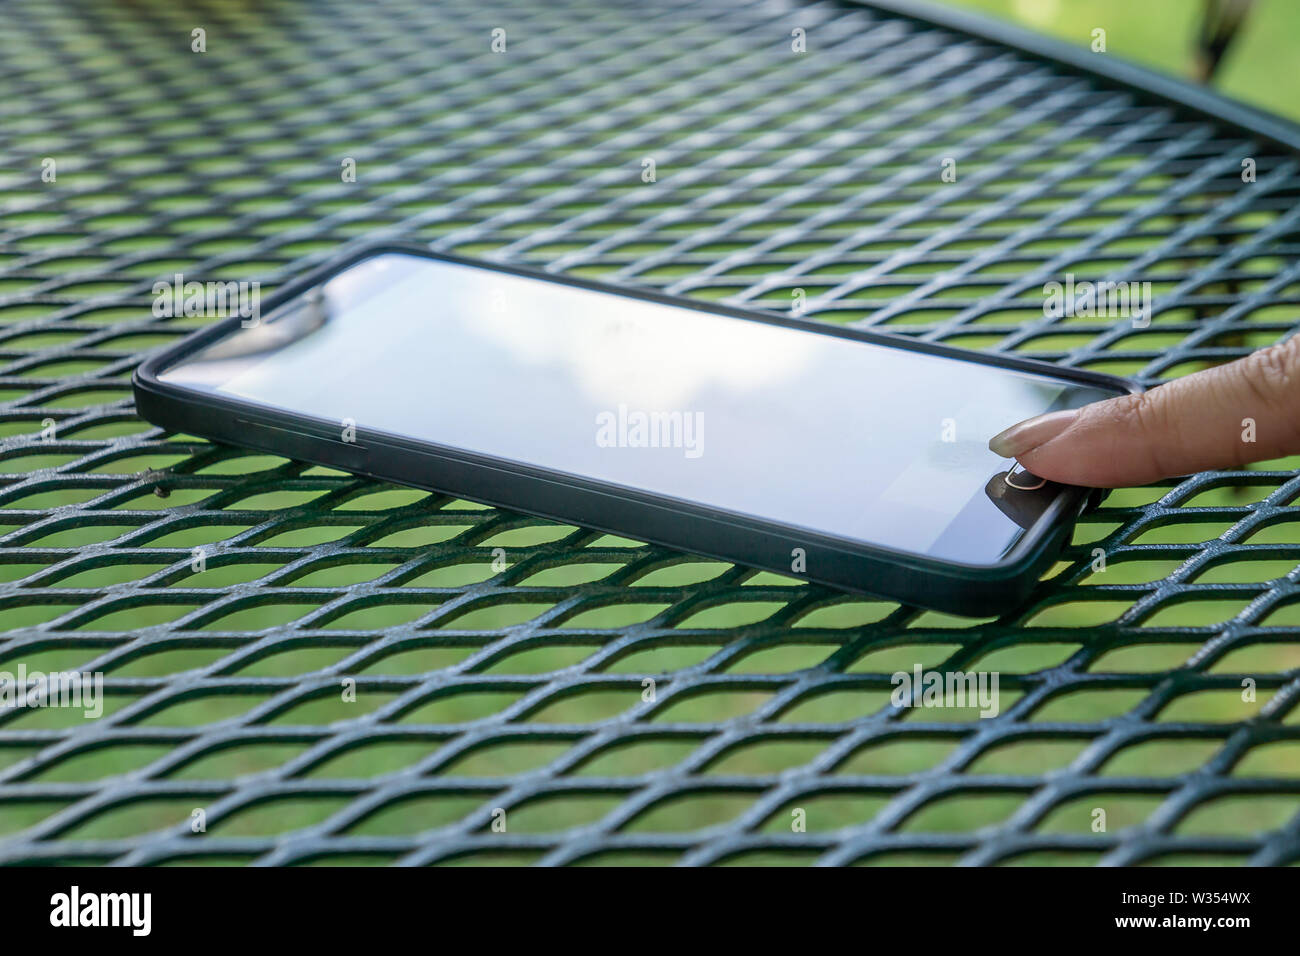 Person's finger tapping on touch button using smart cell phone. Modern tech outside resting on textured pattern outdoor patio table. Sun reflecting gl - Stock Image